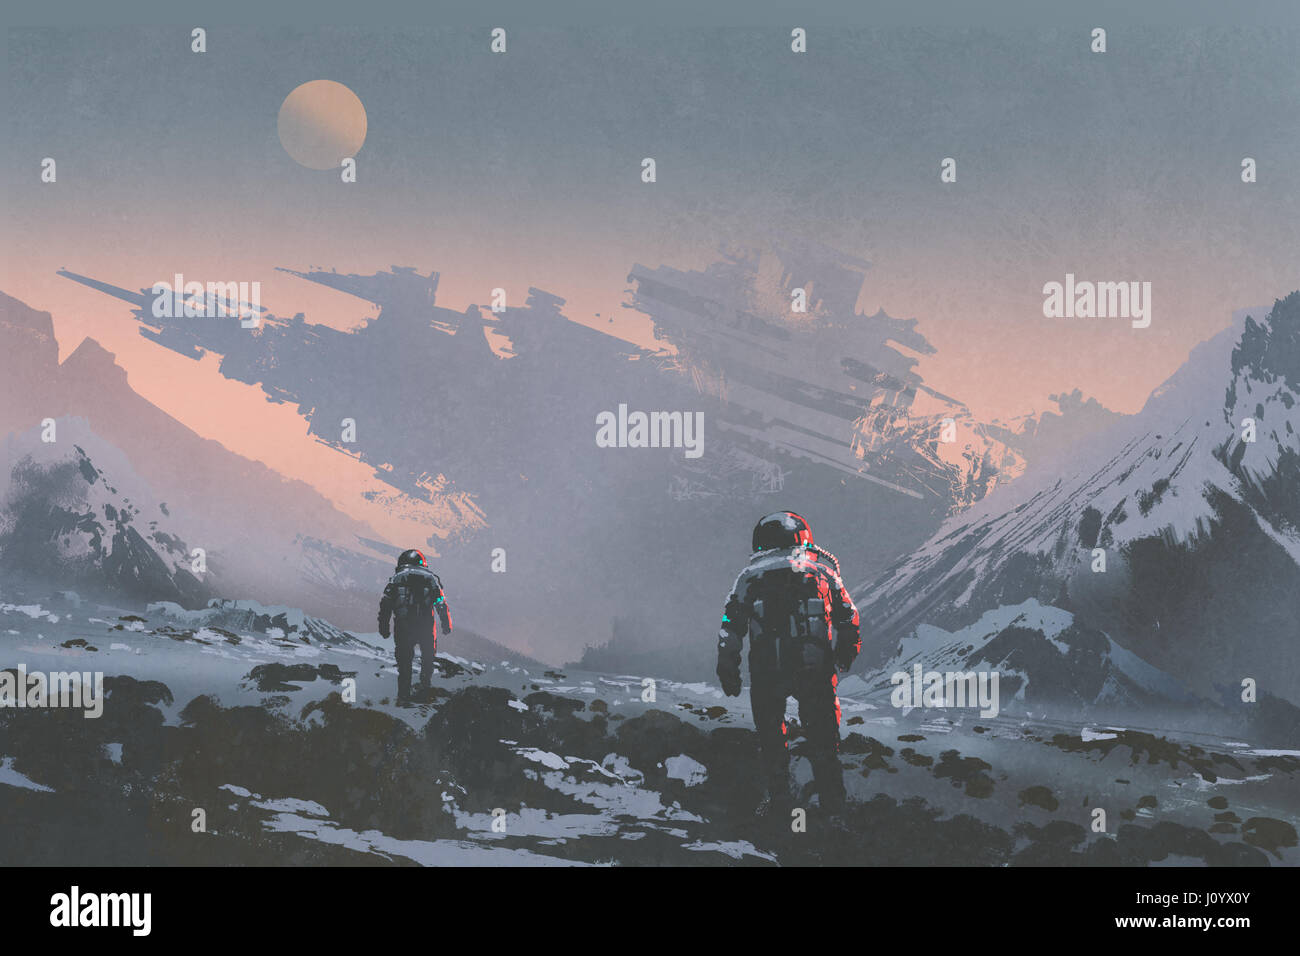 sci-fi concept of astronauts walking to derelict spaceship on alien planet, illustration painting - Stock Image